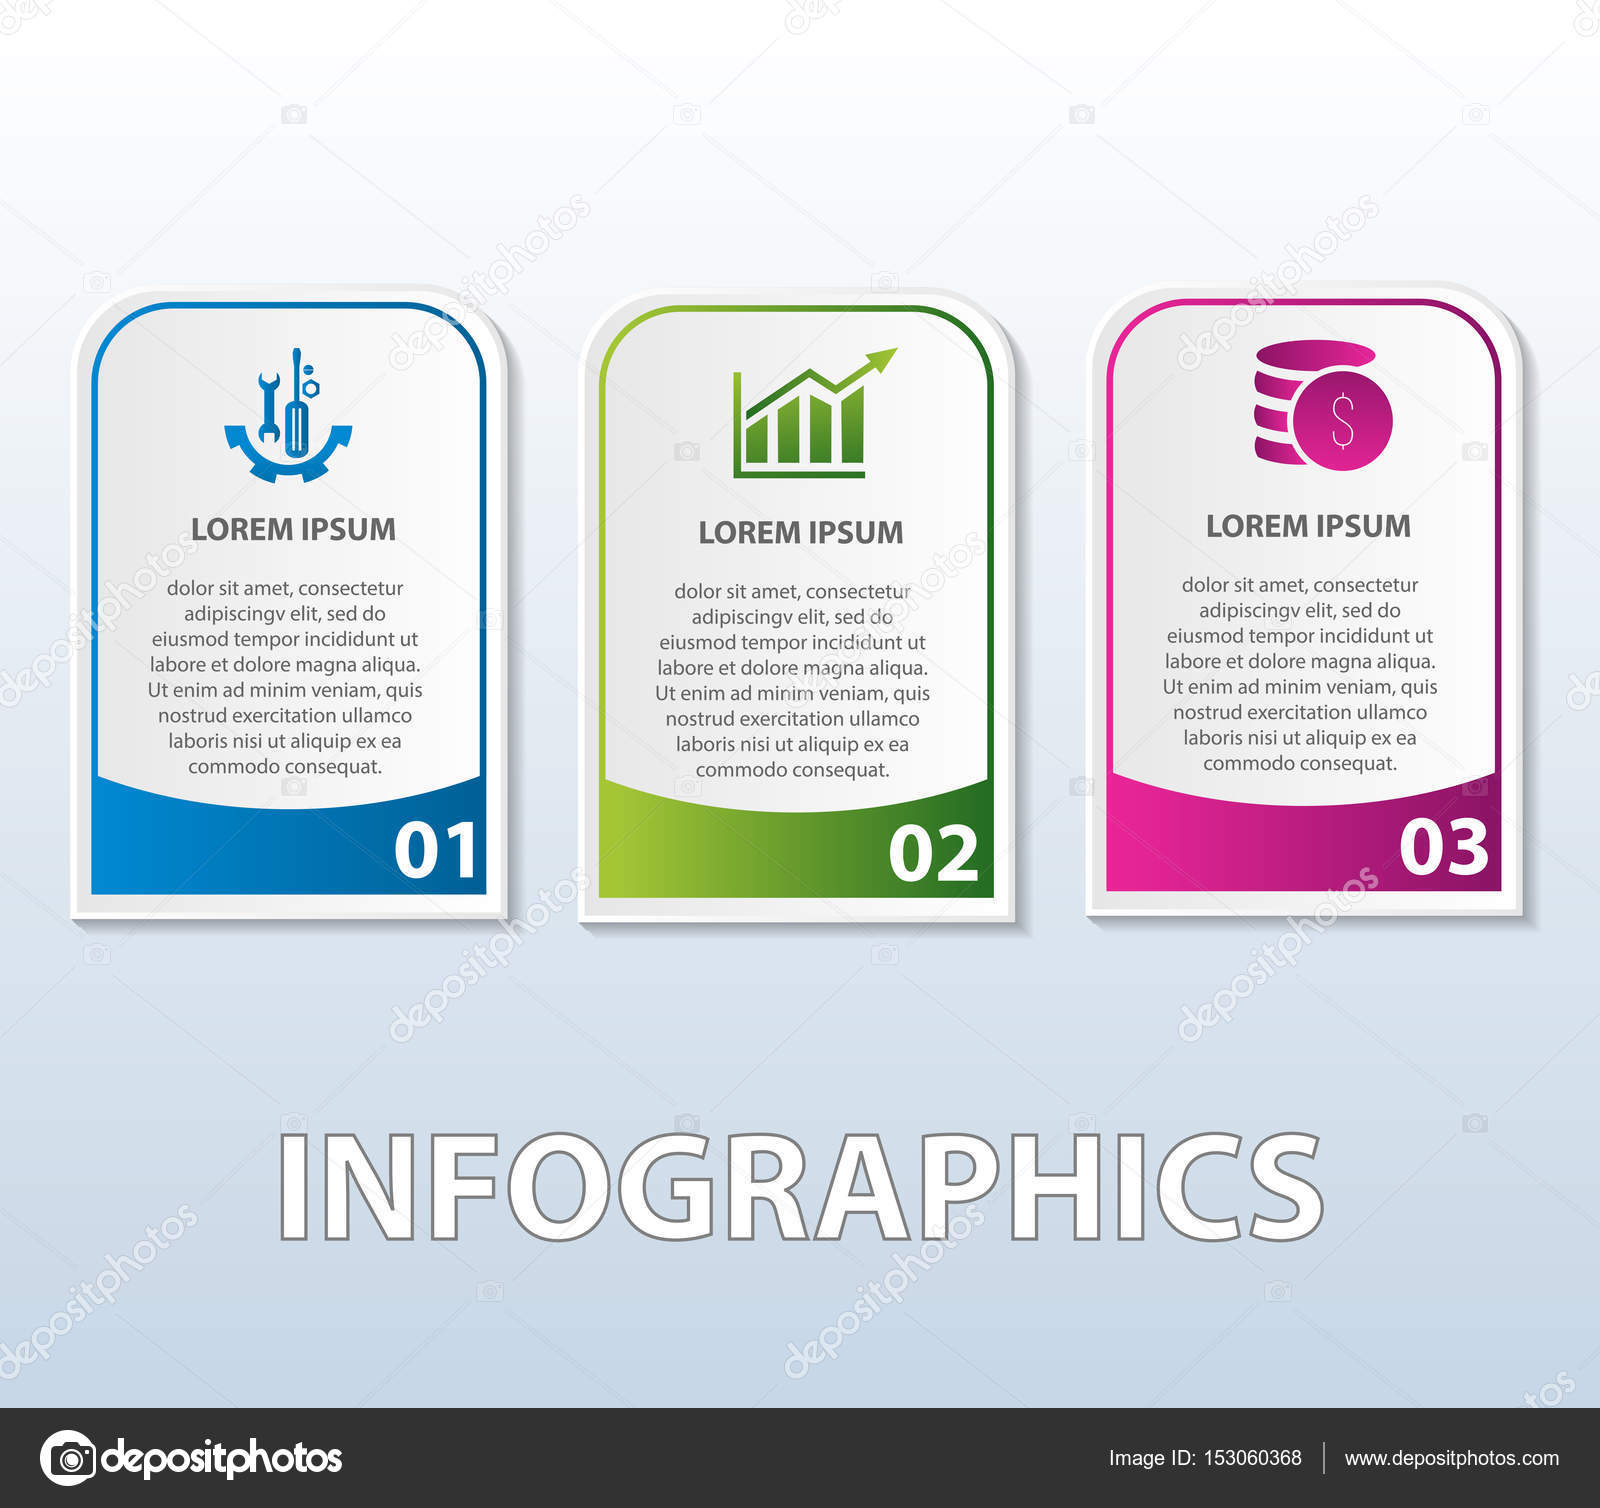 vector illustration template of infographics in the form of